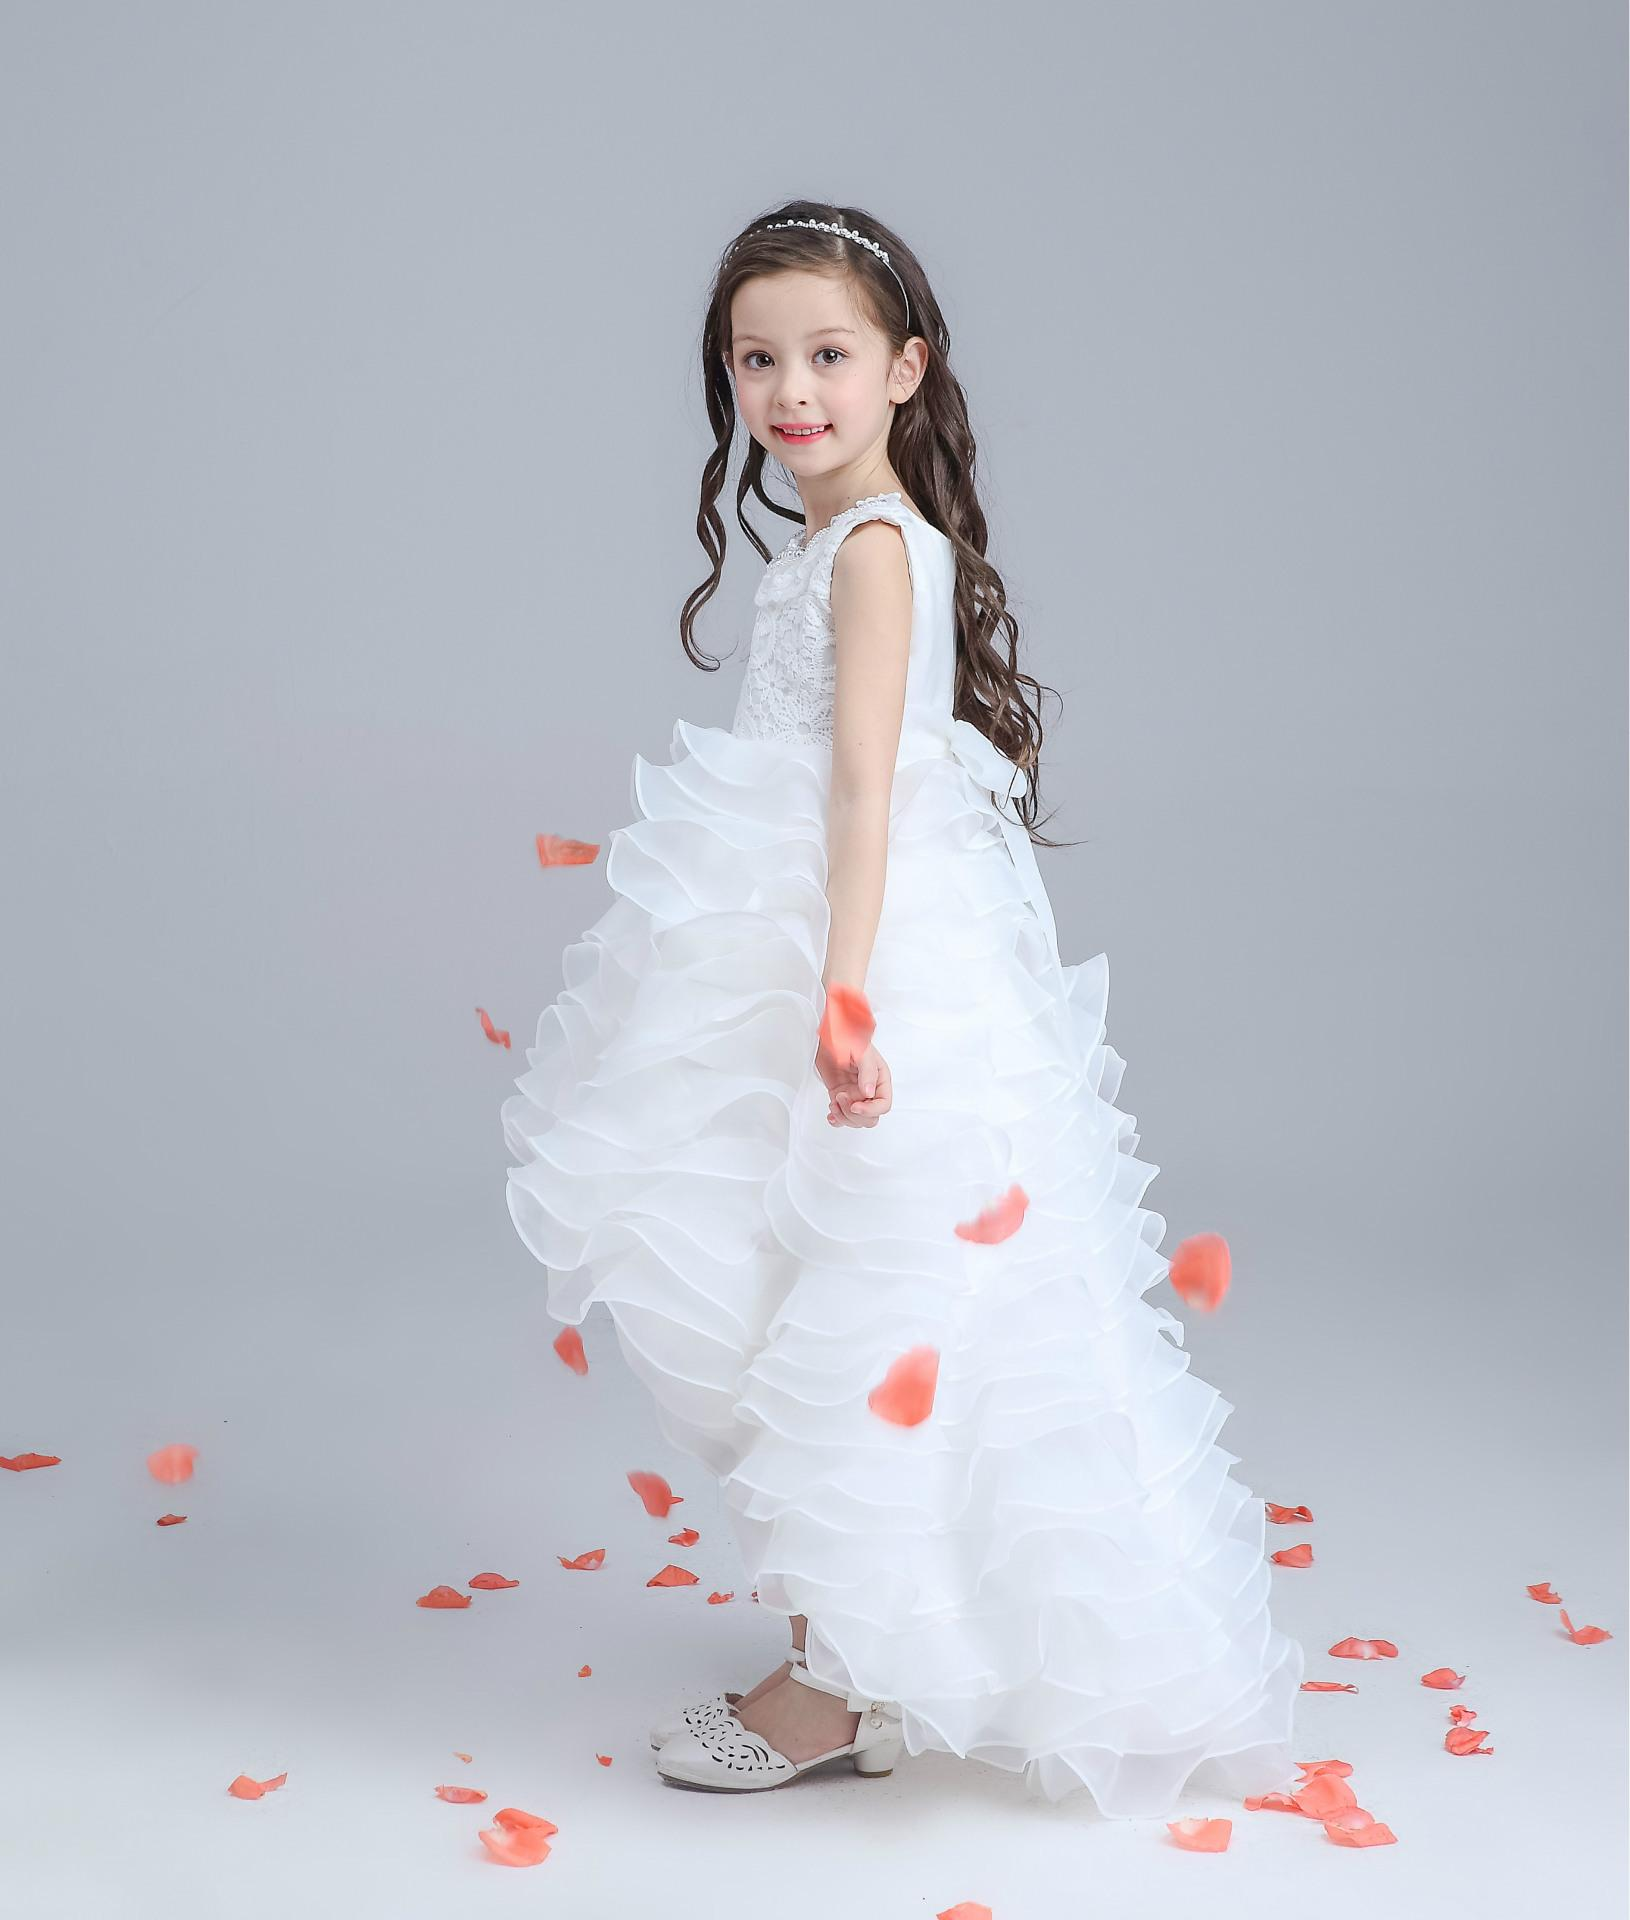 Read New Child Dress Reviews and Customer Ratings on kid dress , dress child , child dress, child dress Reviews, Mother & Kids, Dresses, Women's Clothing & Accessories, Dresses Reviews and more at rusticzcountrysstylexhomedecor.tk Buy Cheap New Child Dress Now.